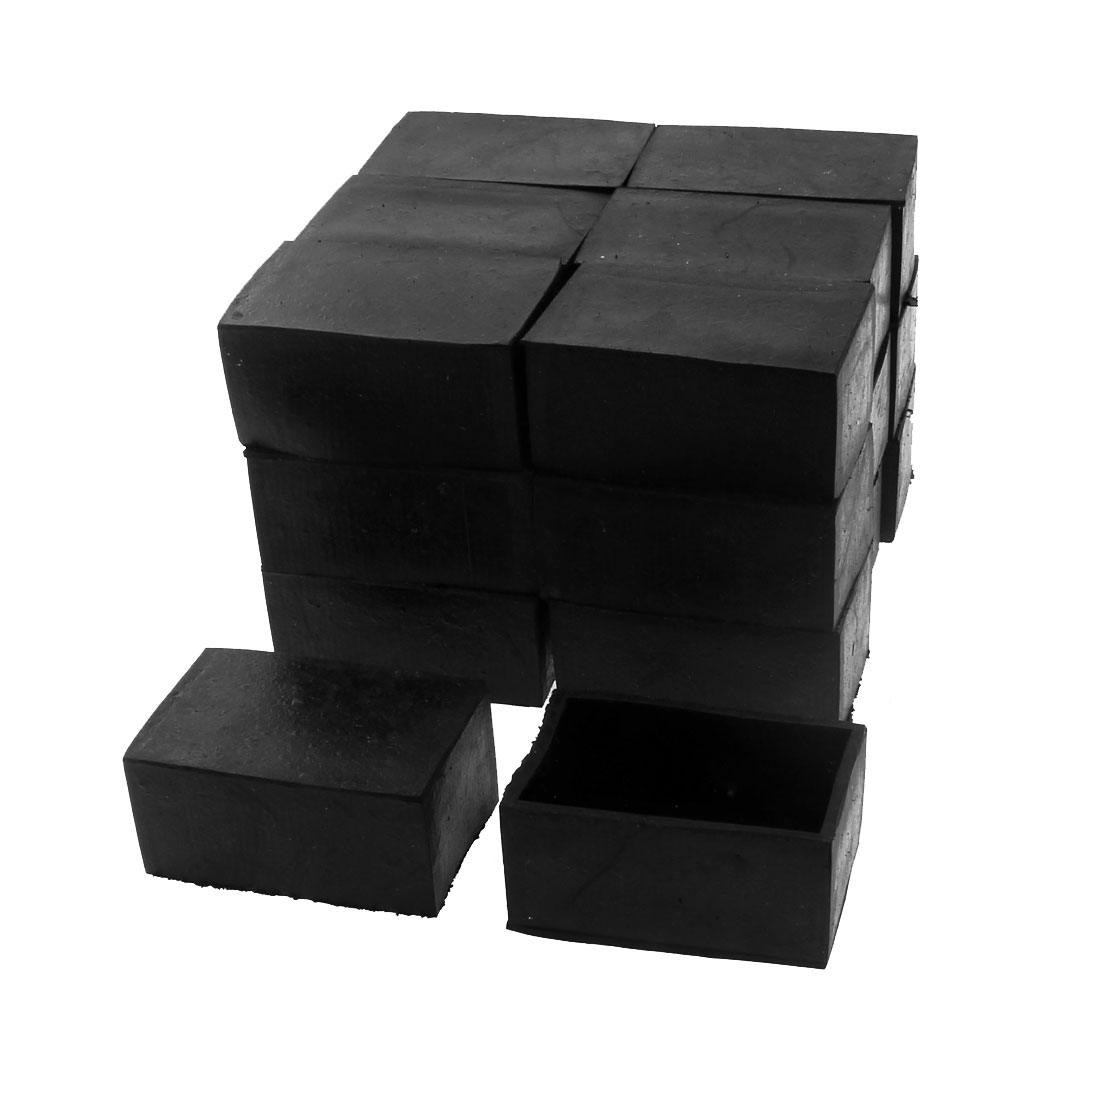 50mm x 30mm Rectangle Shape Furniture Table Chair Foot Leg Rubber End Cap Cover Black 20pcs